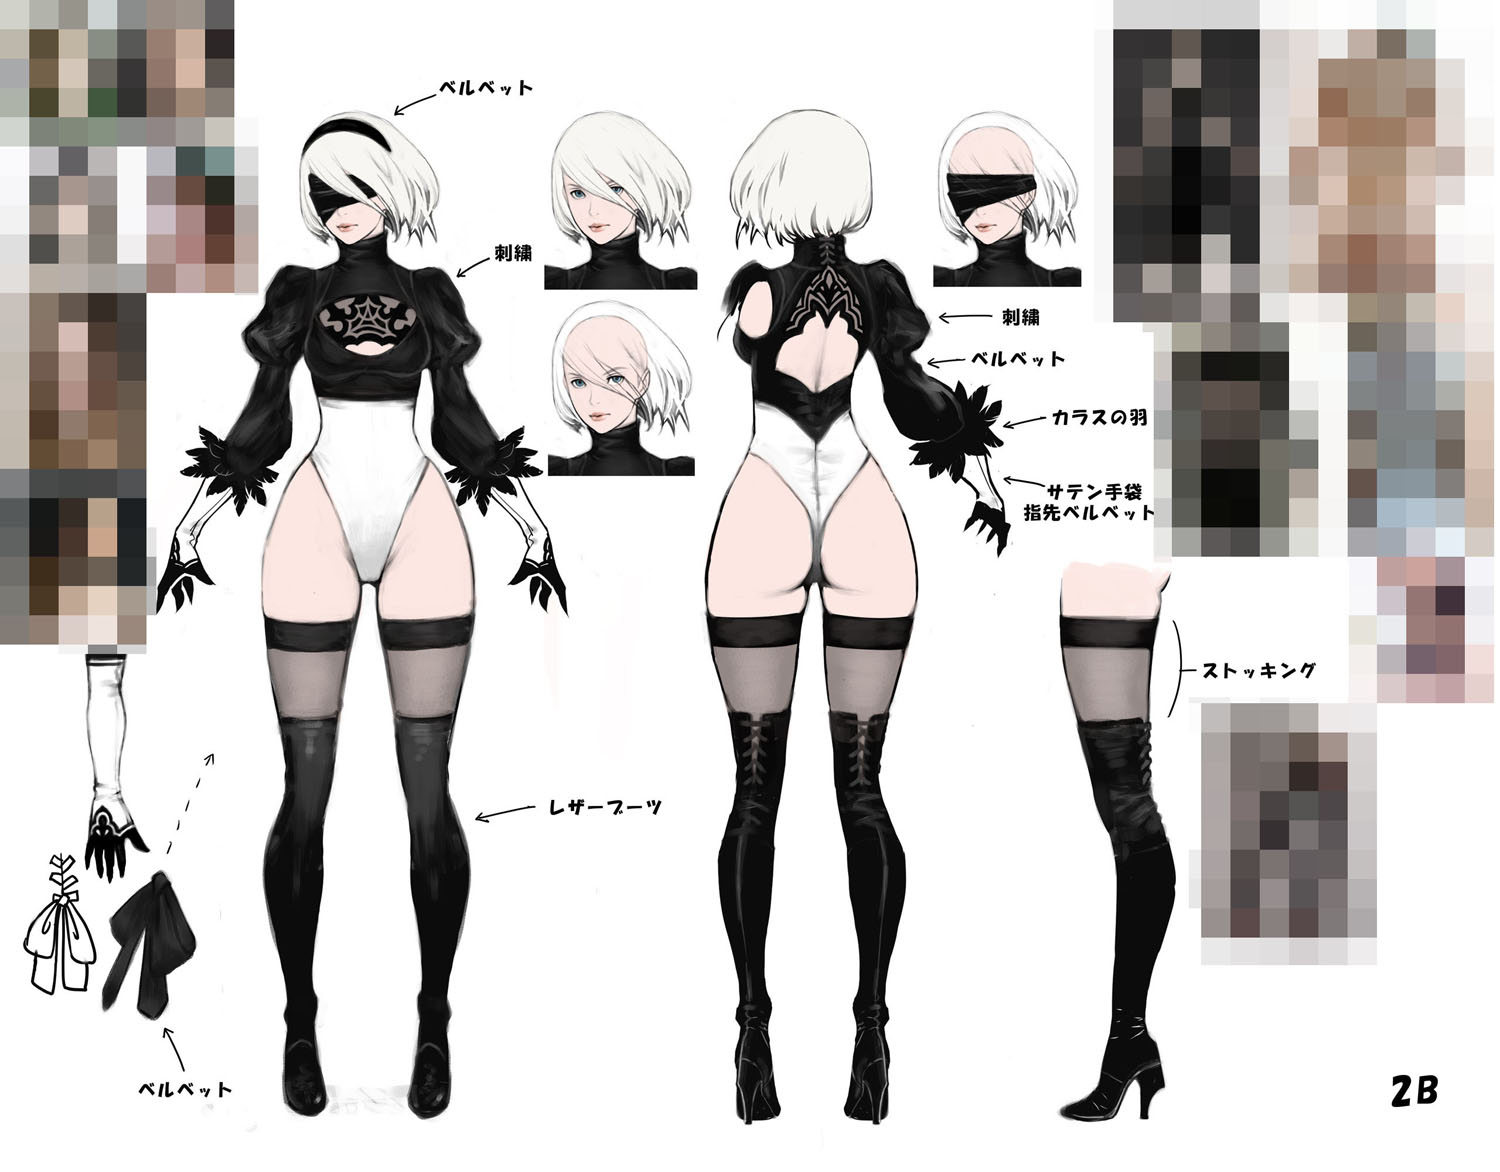 NIER_BLOG_ART_A_20170517_03_FULL_1500x1172